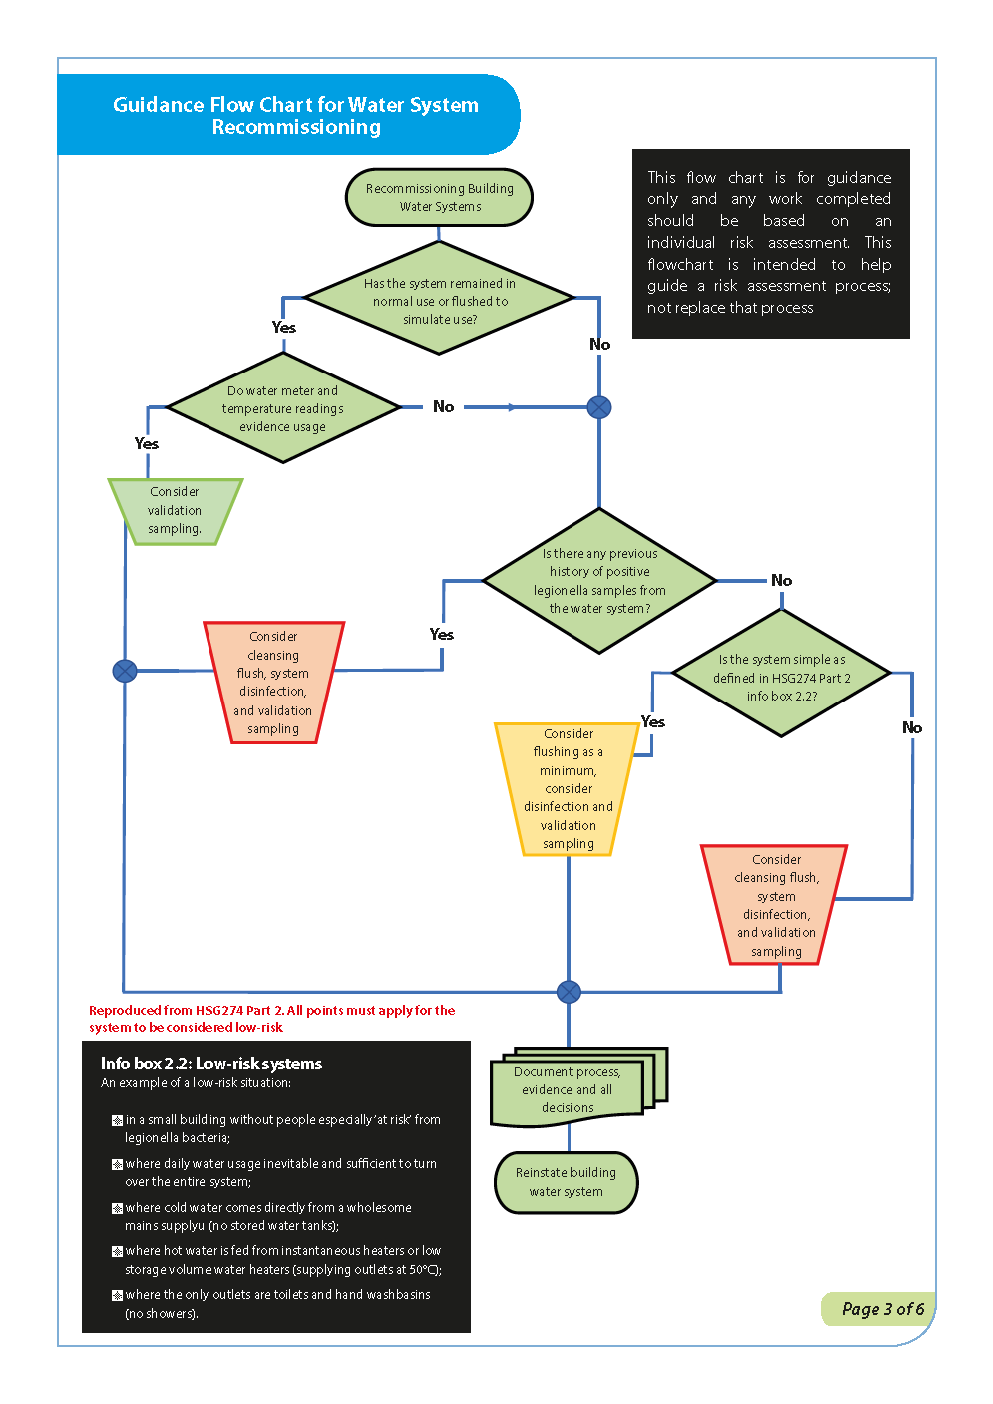 Recommissioning water systems flow chart